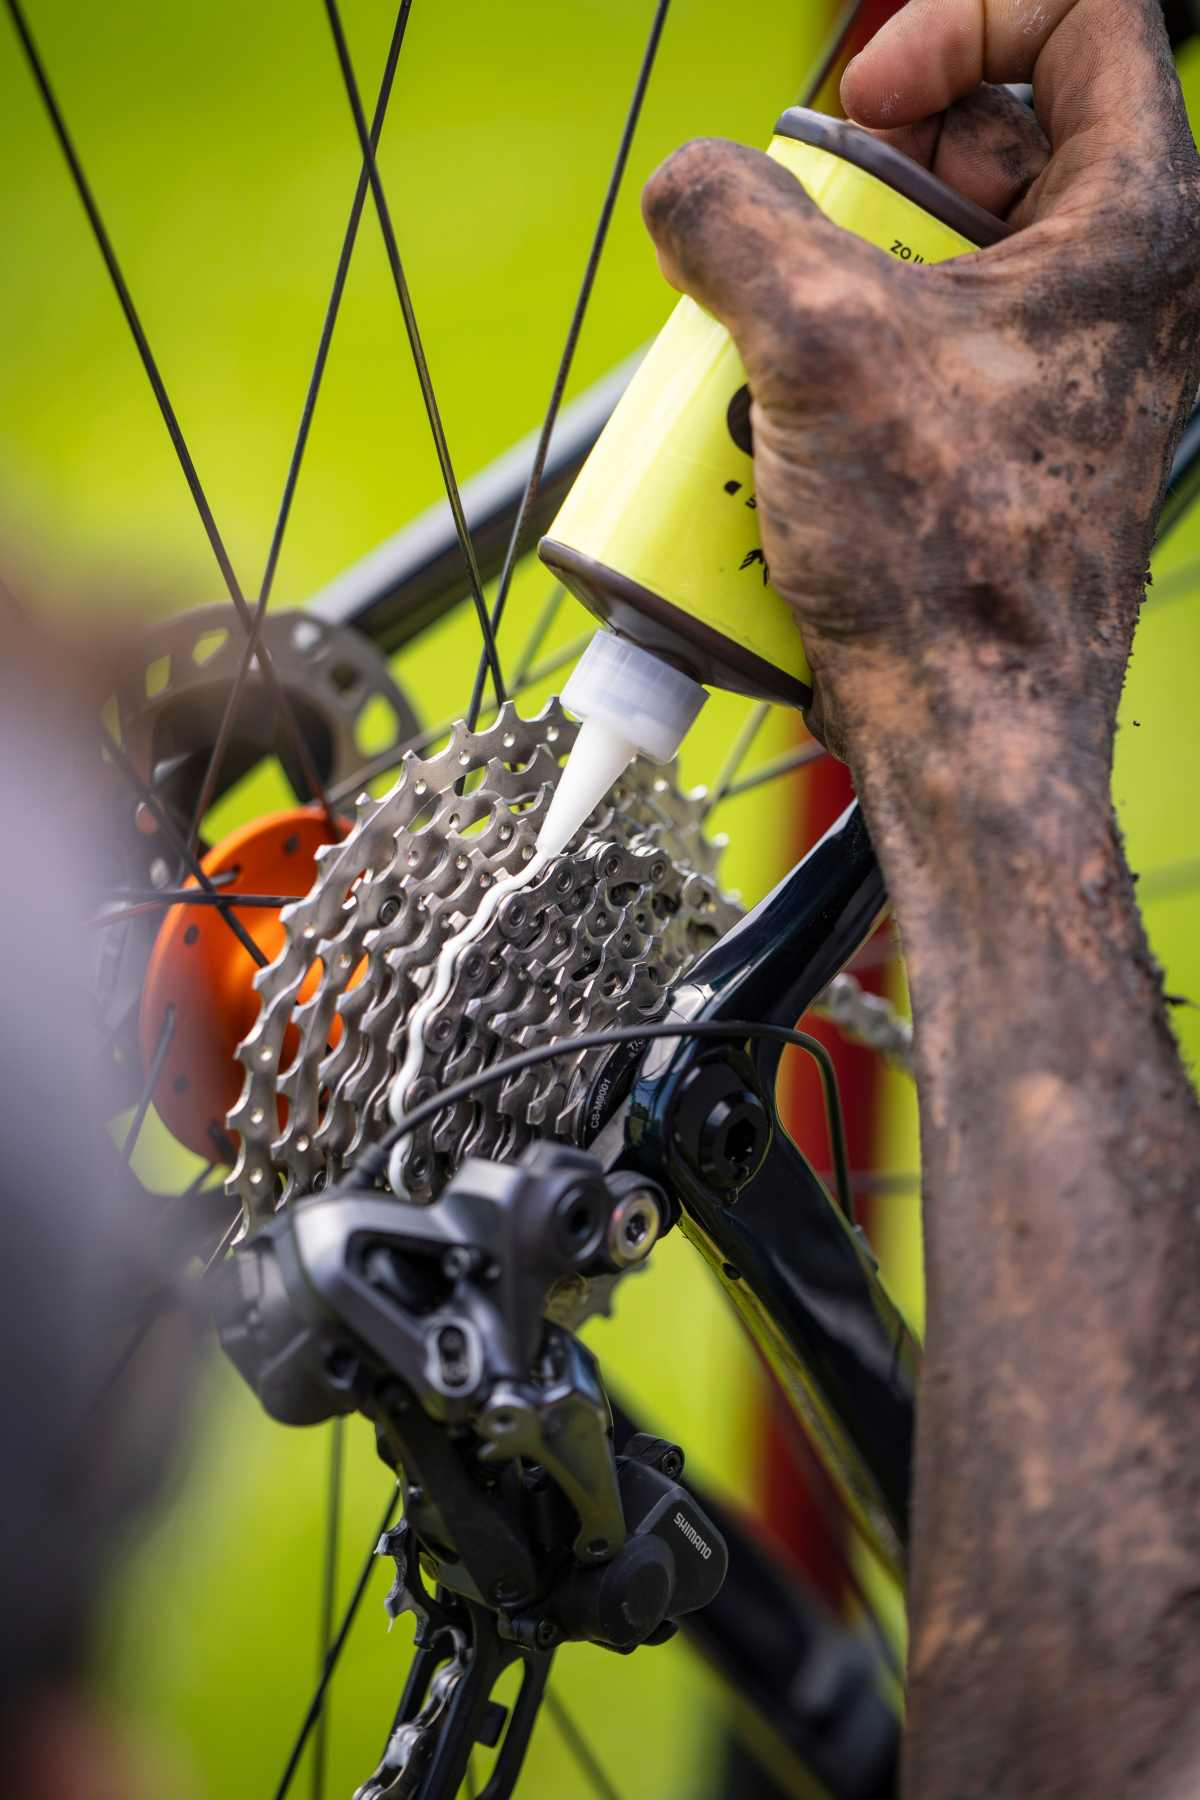 Allied Cycle Works GRAX Chain Lubricant review